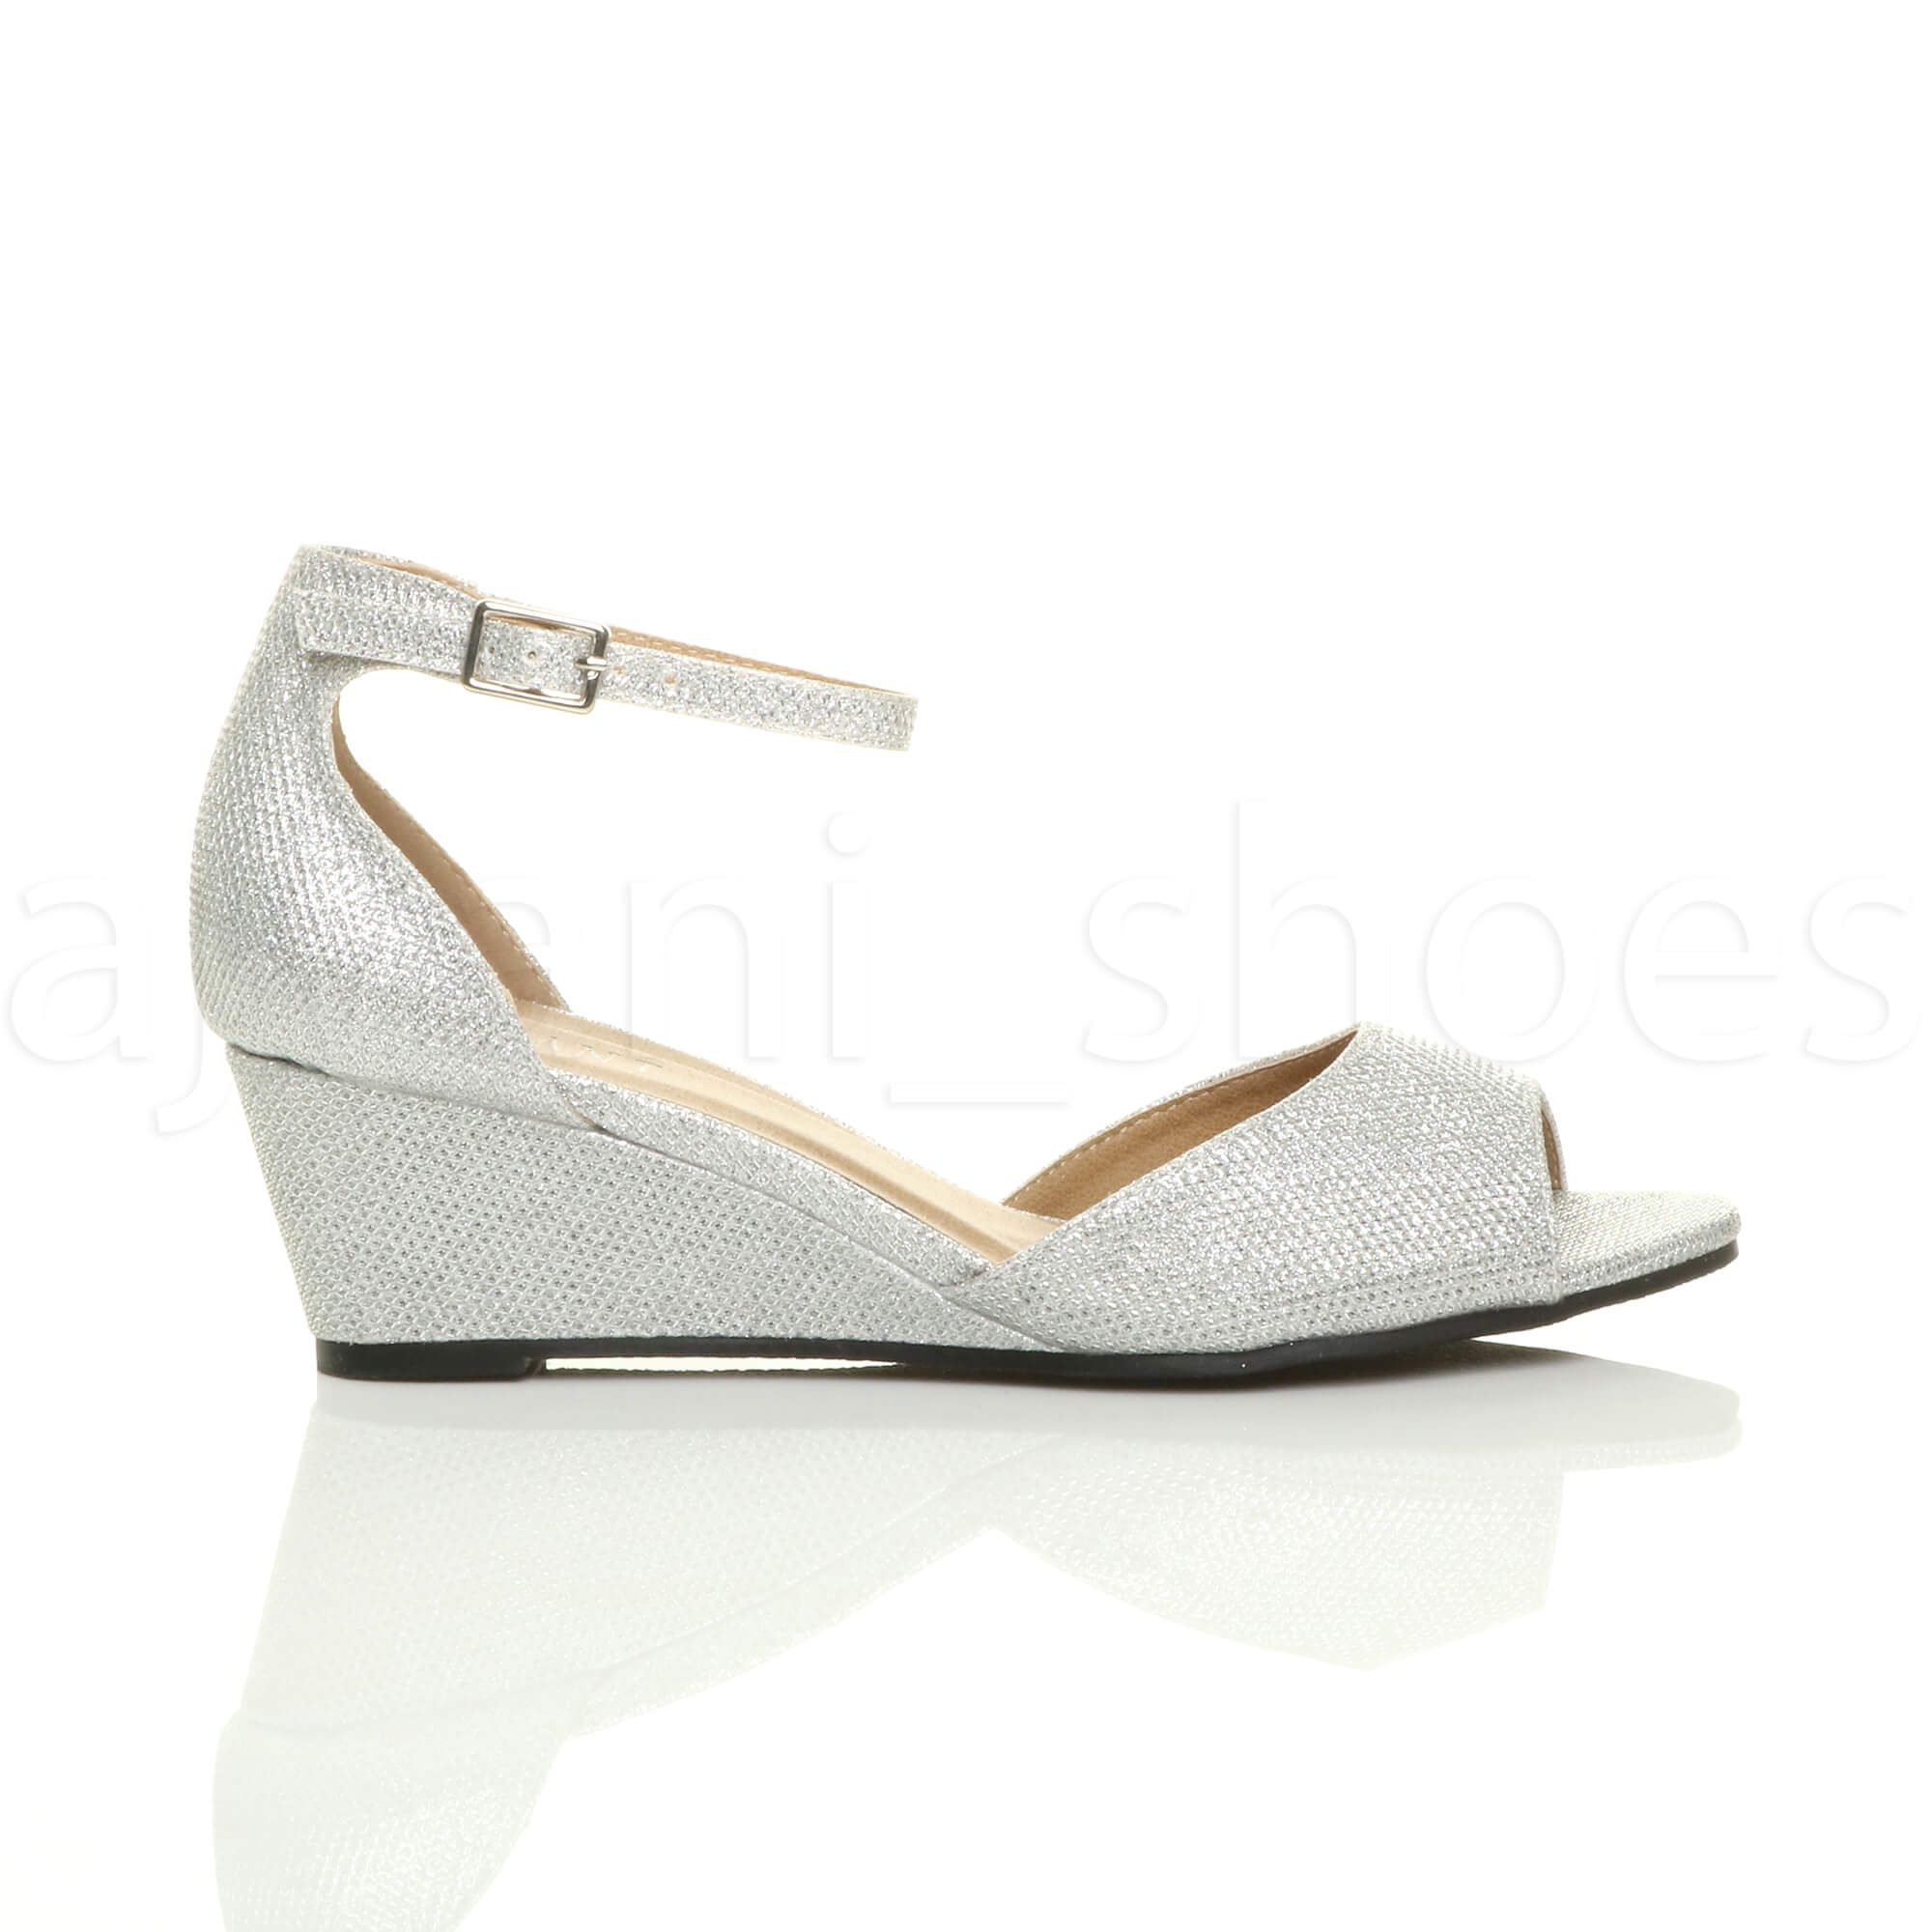 WOMENS-LADIES-LOW-MID-WEDGE-HEEL-ANKLE-STRAP-SMART-CASUAL-EVENING-SANDALS-SIZE thumbnail 139